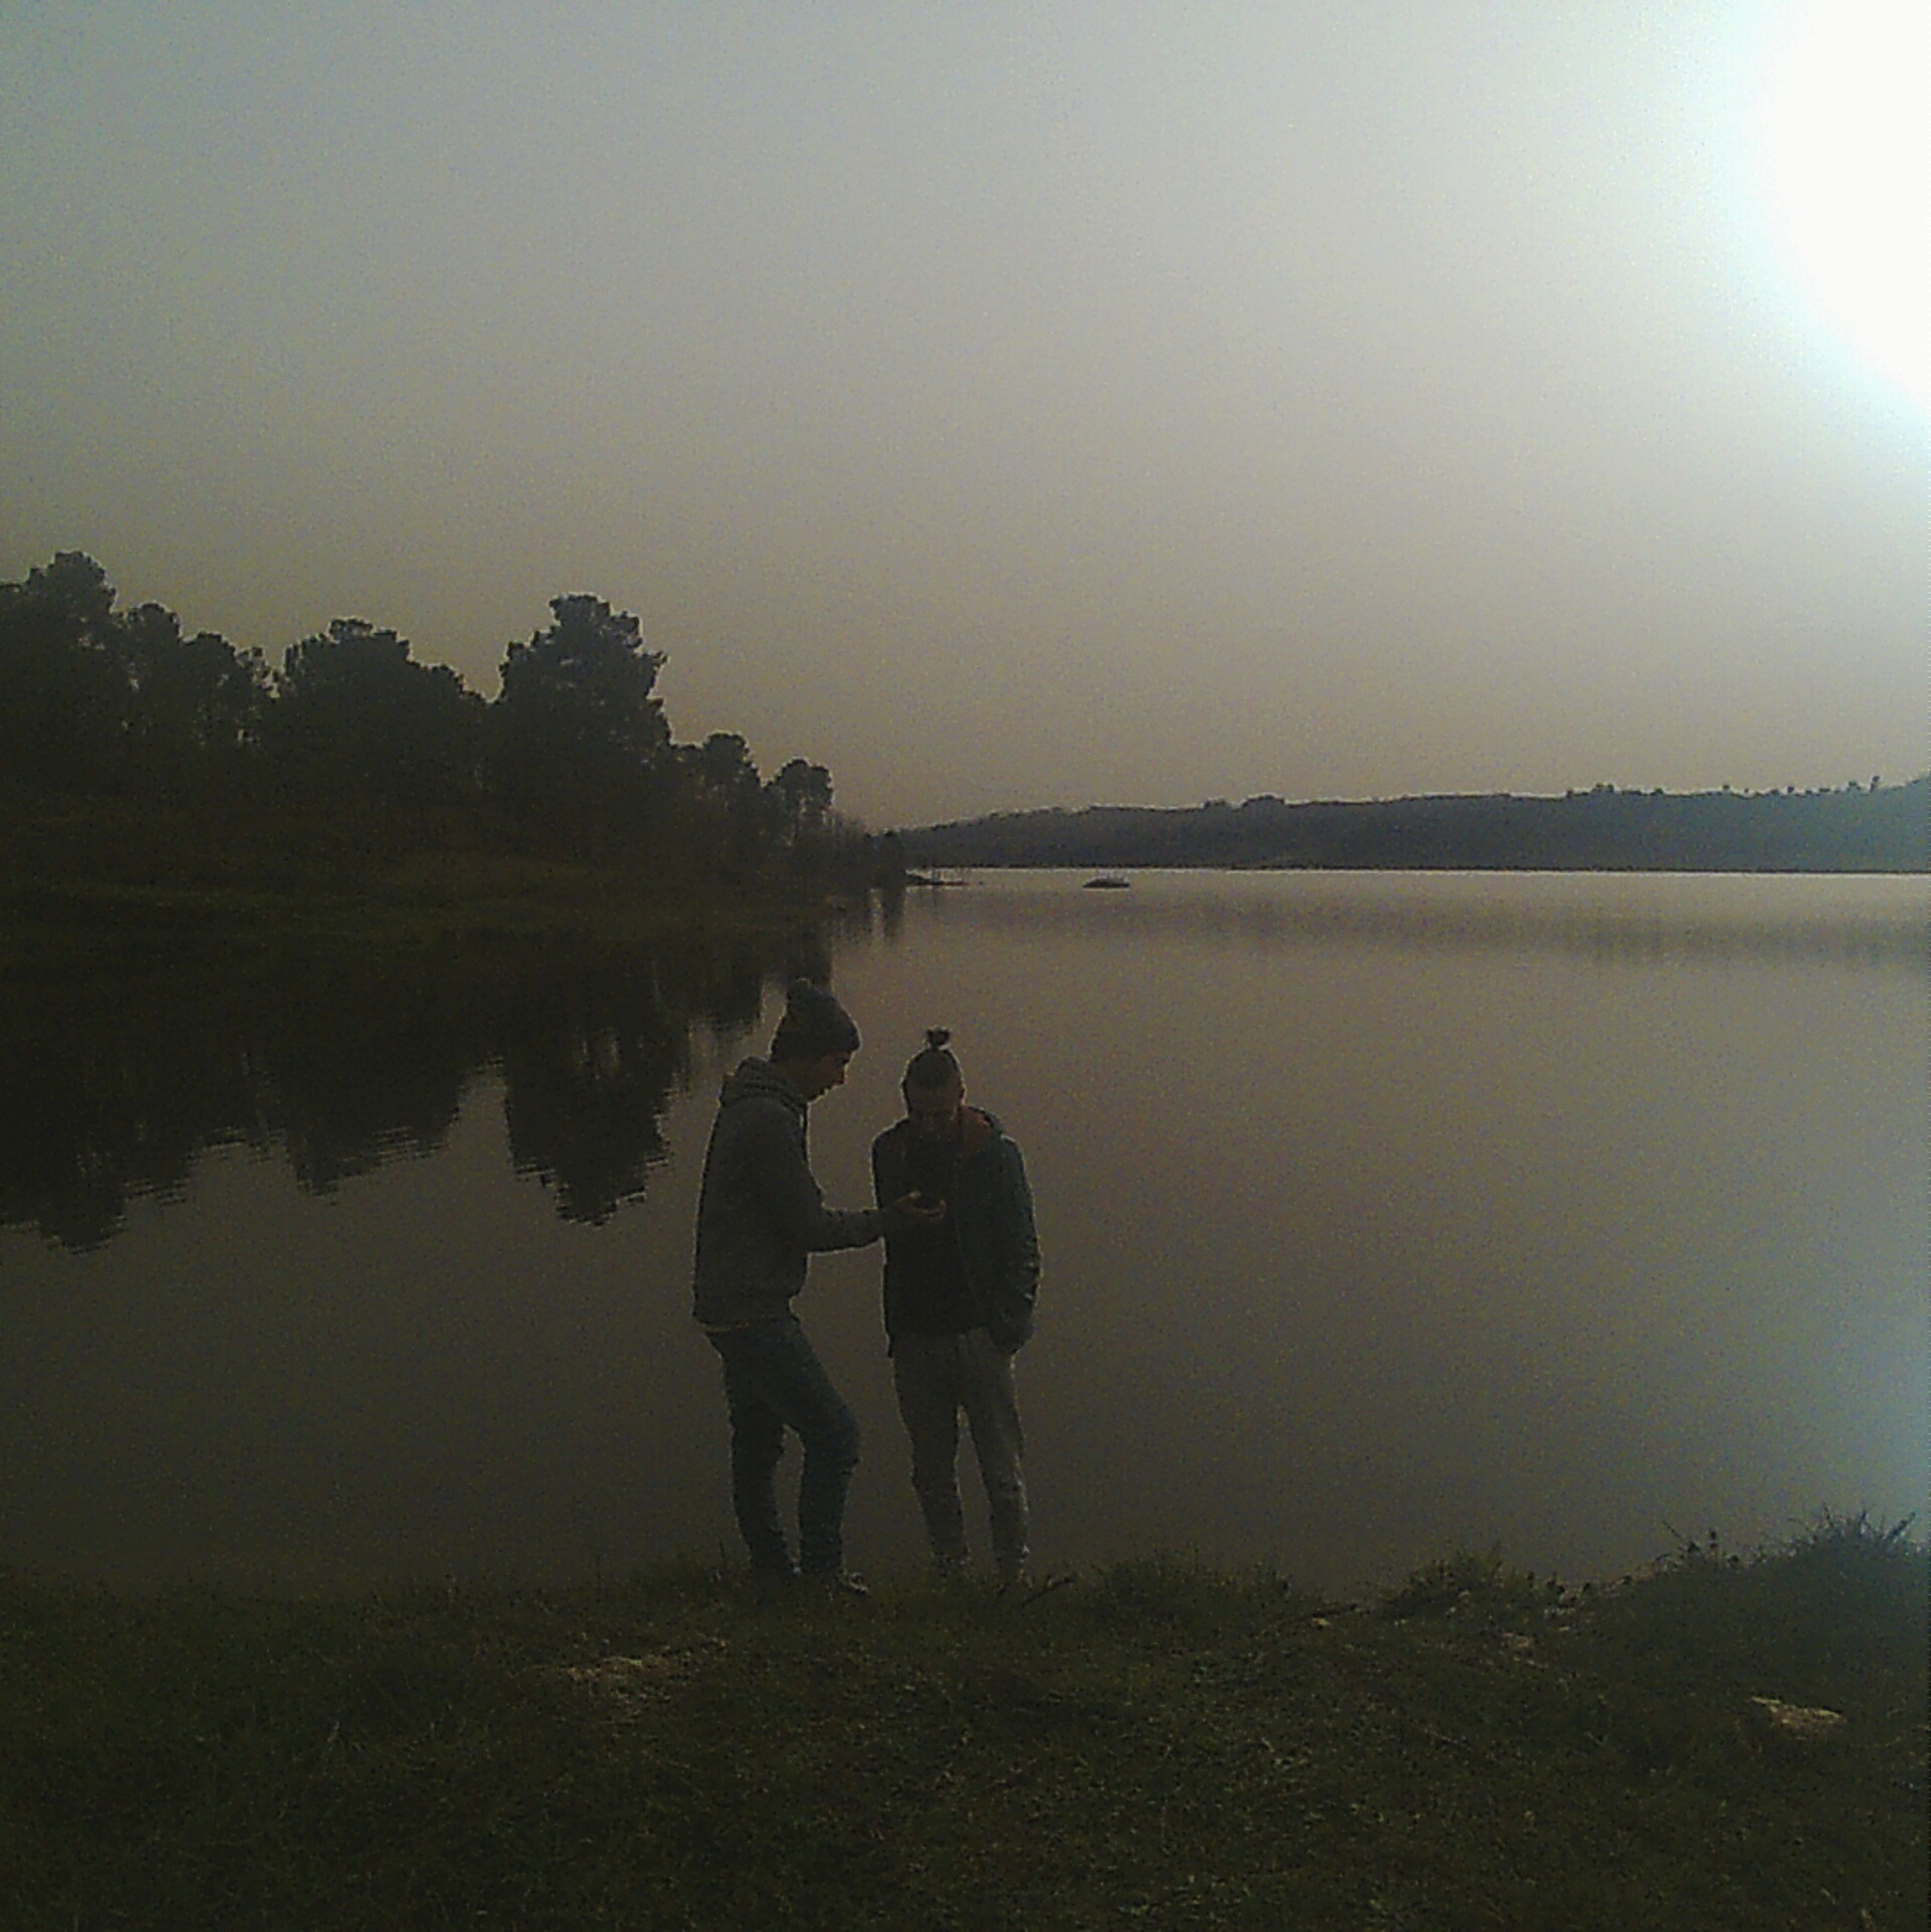 lifestyles, water, rear view, leisure activity, full length, men, standing, clear sky, lake, togetherness, tranquility, reflection, boys, tranquil scene, nature, casual clothing, bonding